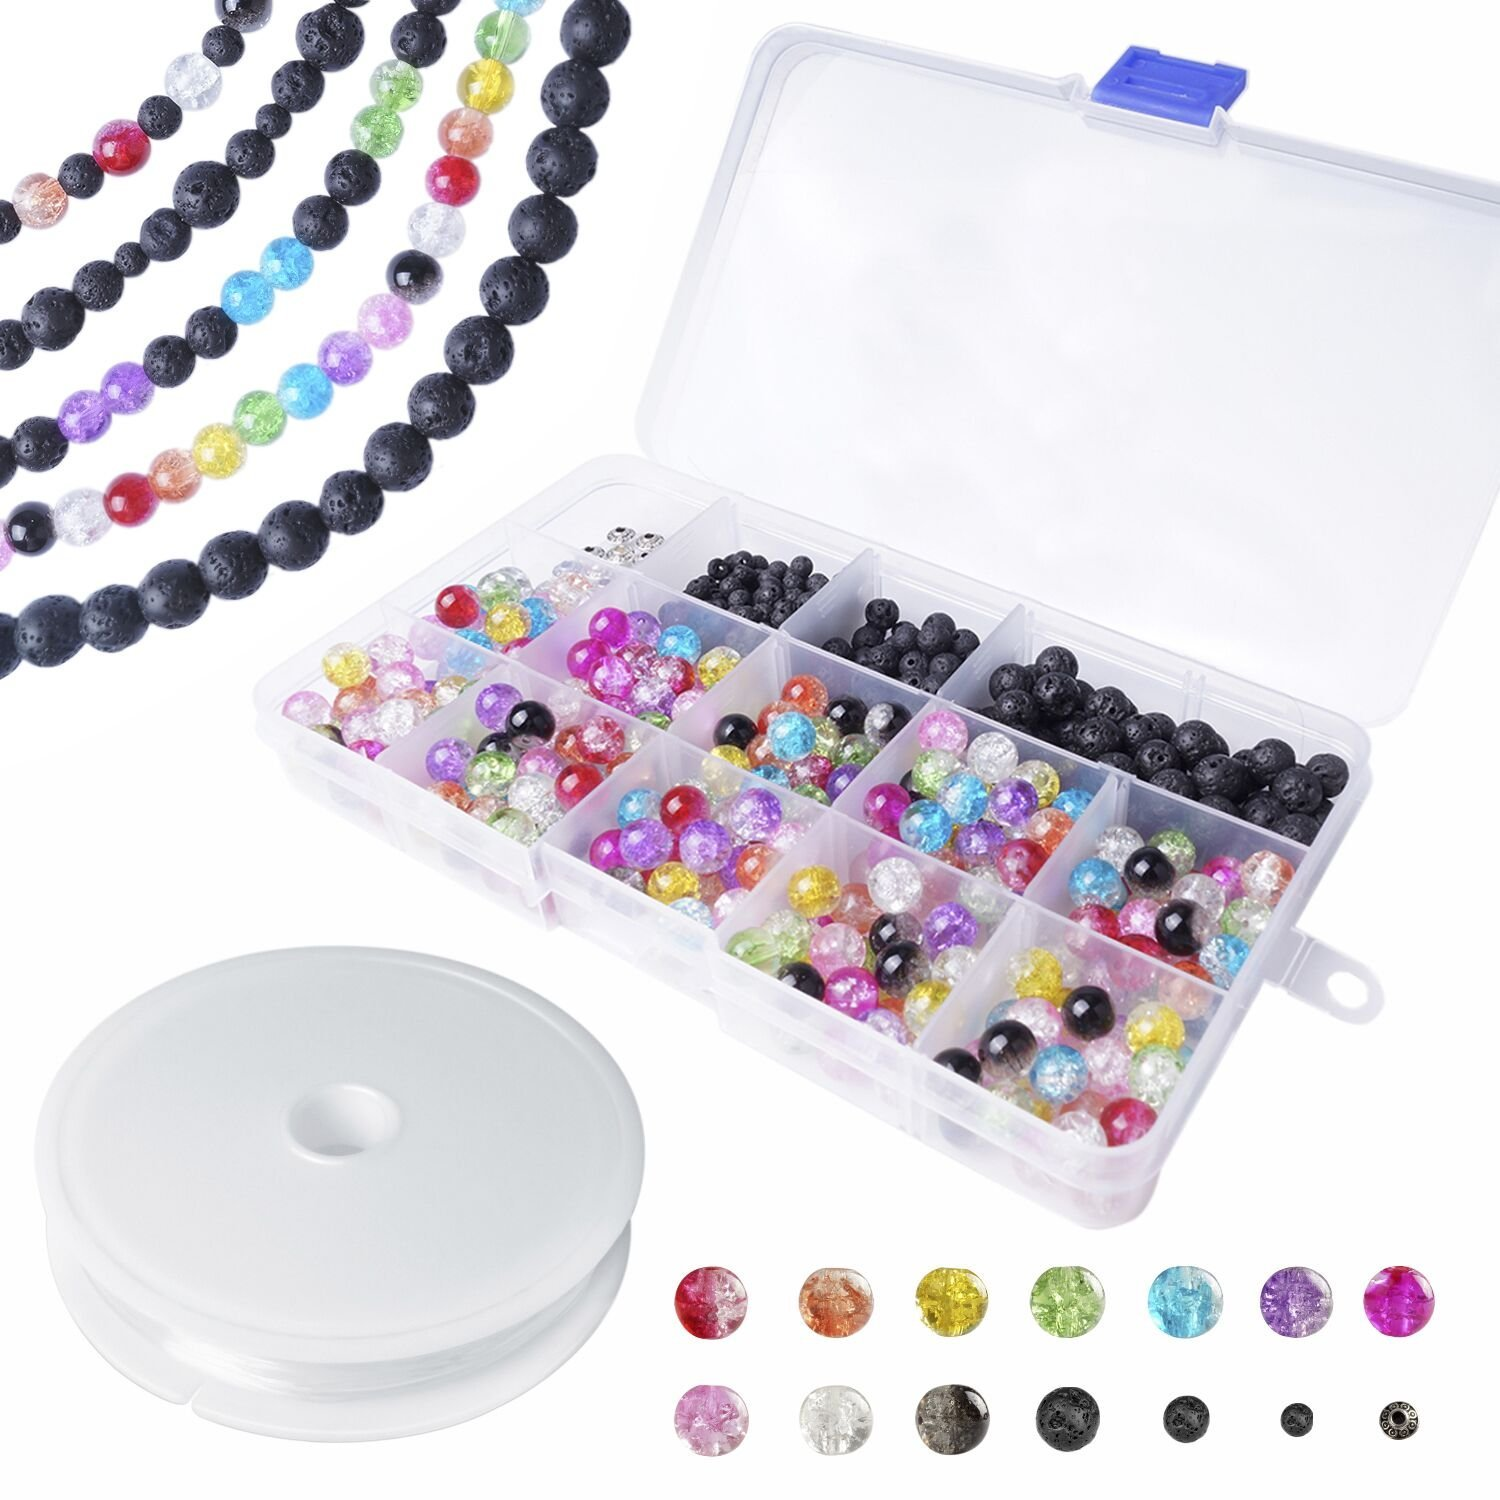 Lava Beads Lava Stone Beads for Essential Oil and Jewelry Making with Colorful Glass Crackle Beads 410pcs FittiDoll